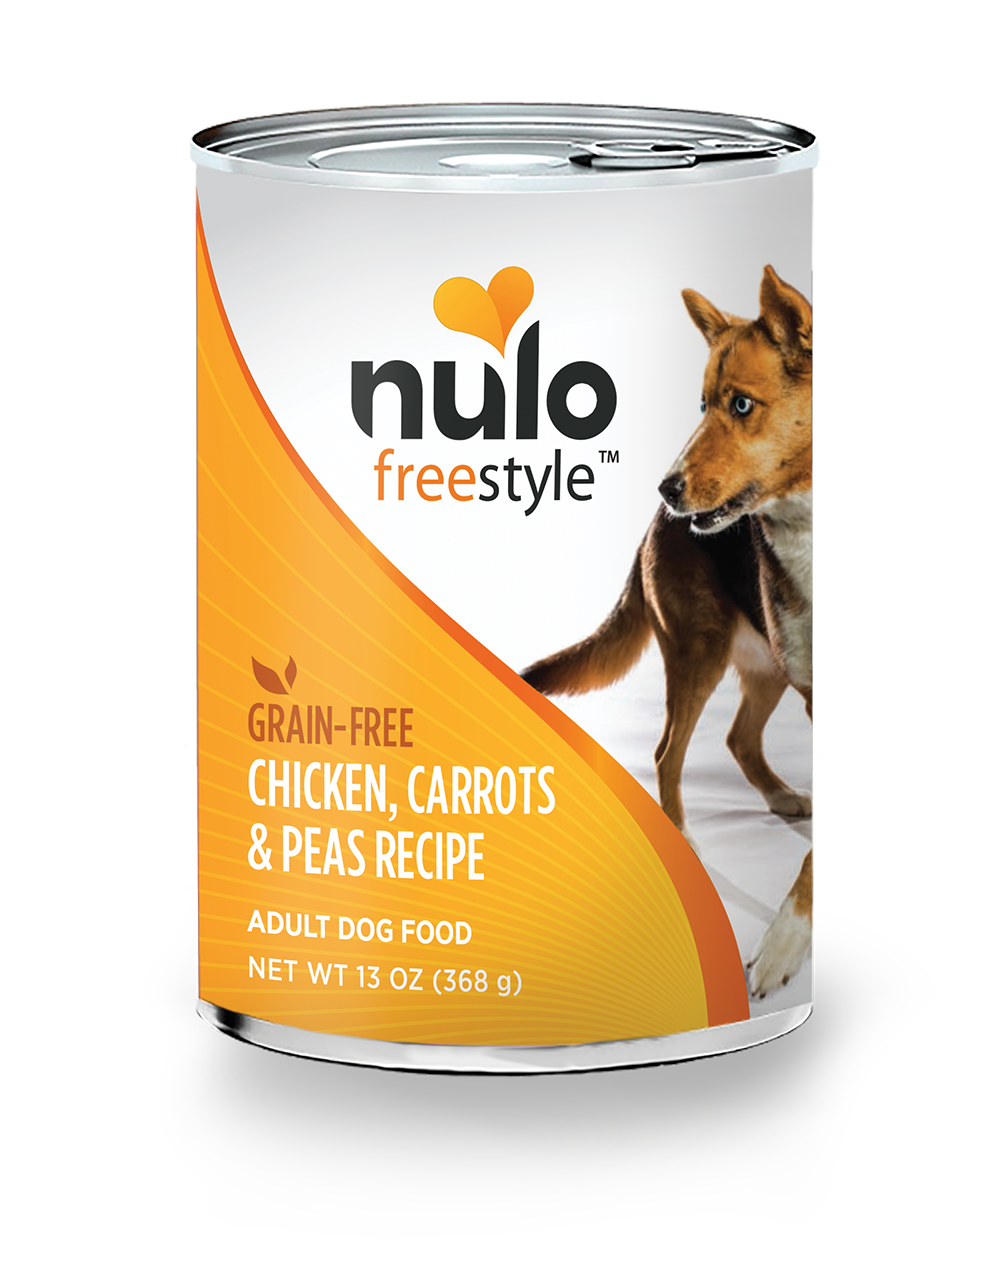 Nulo freestyle dog chicken can